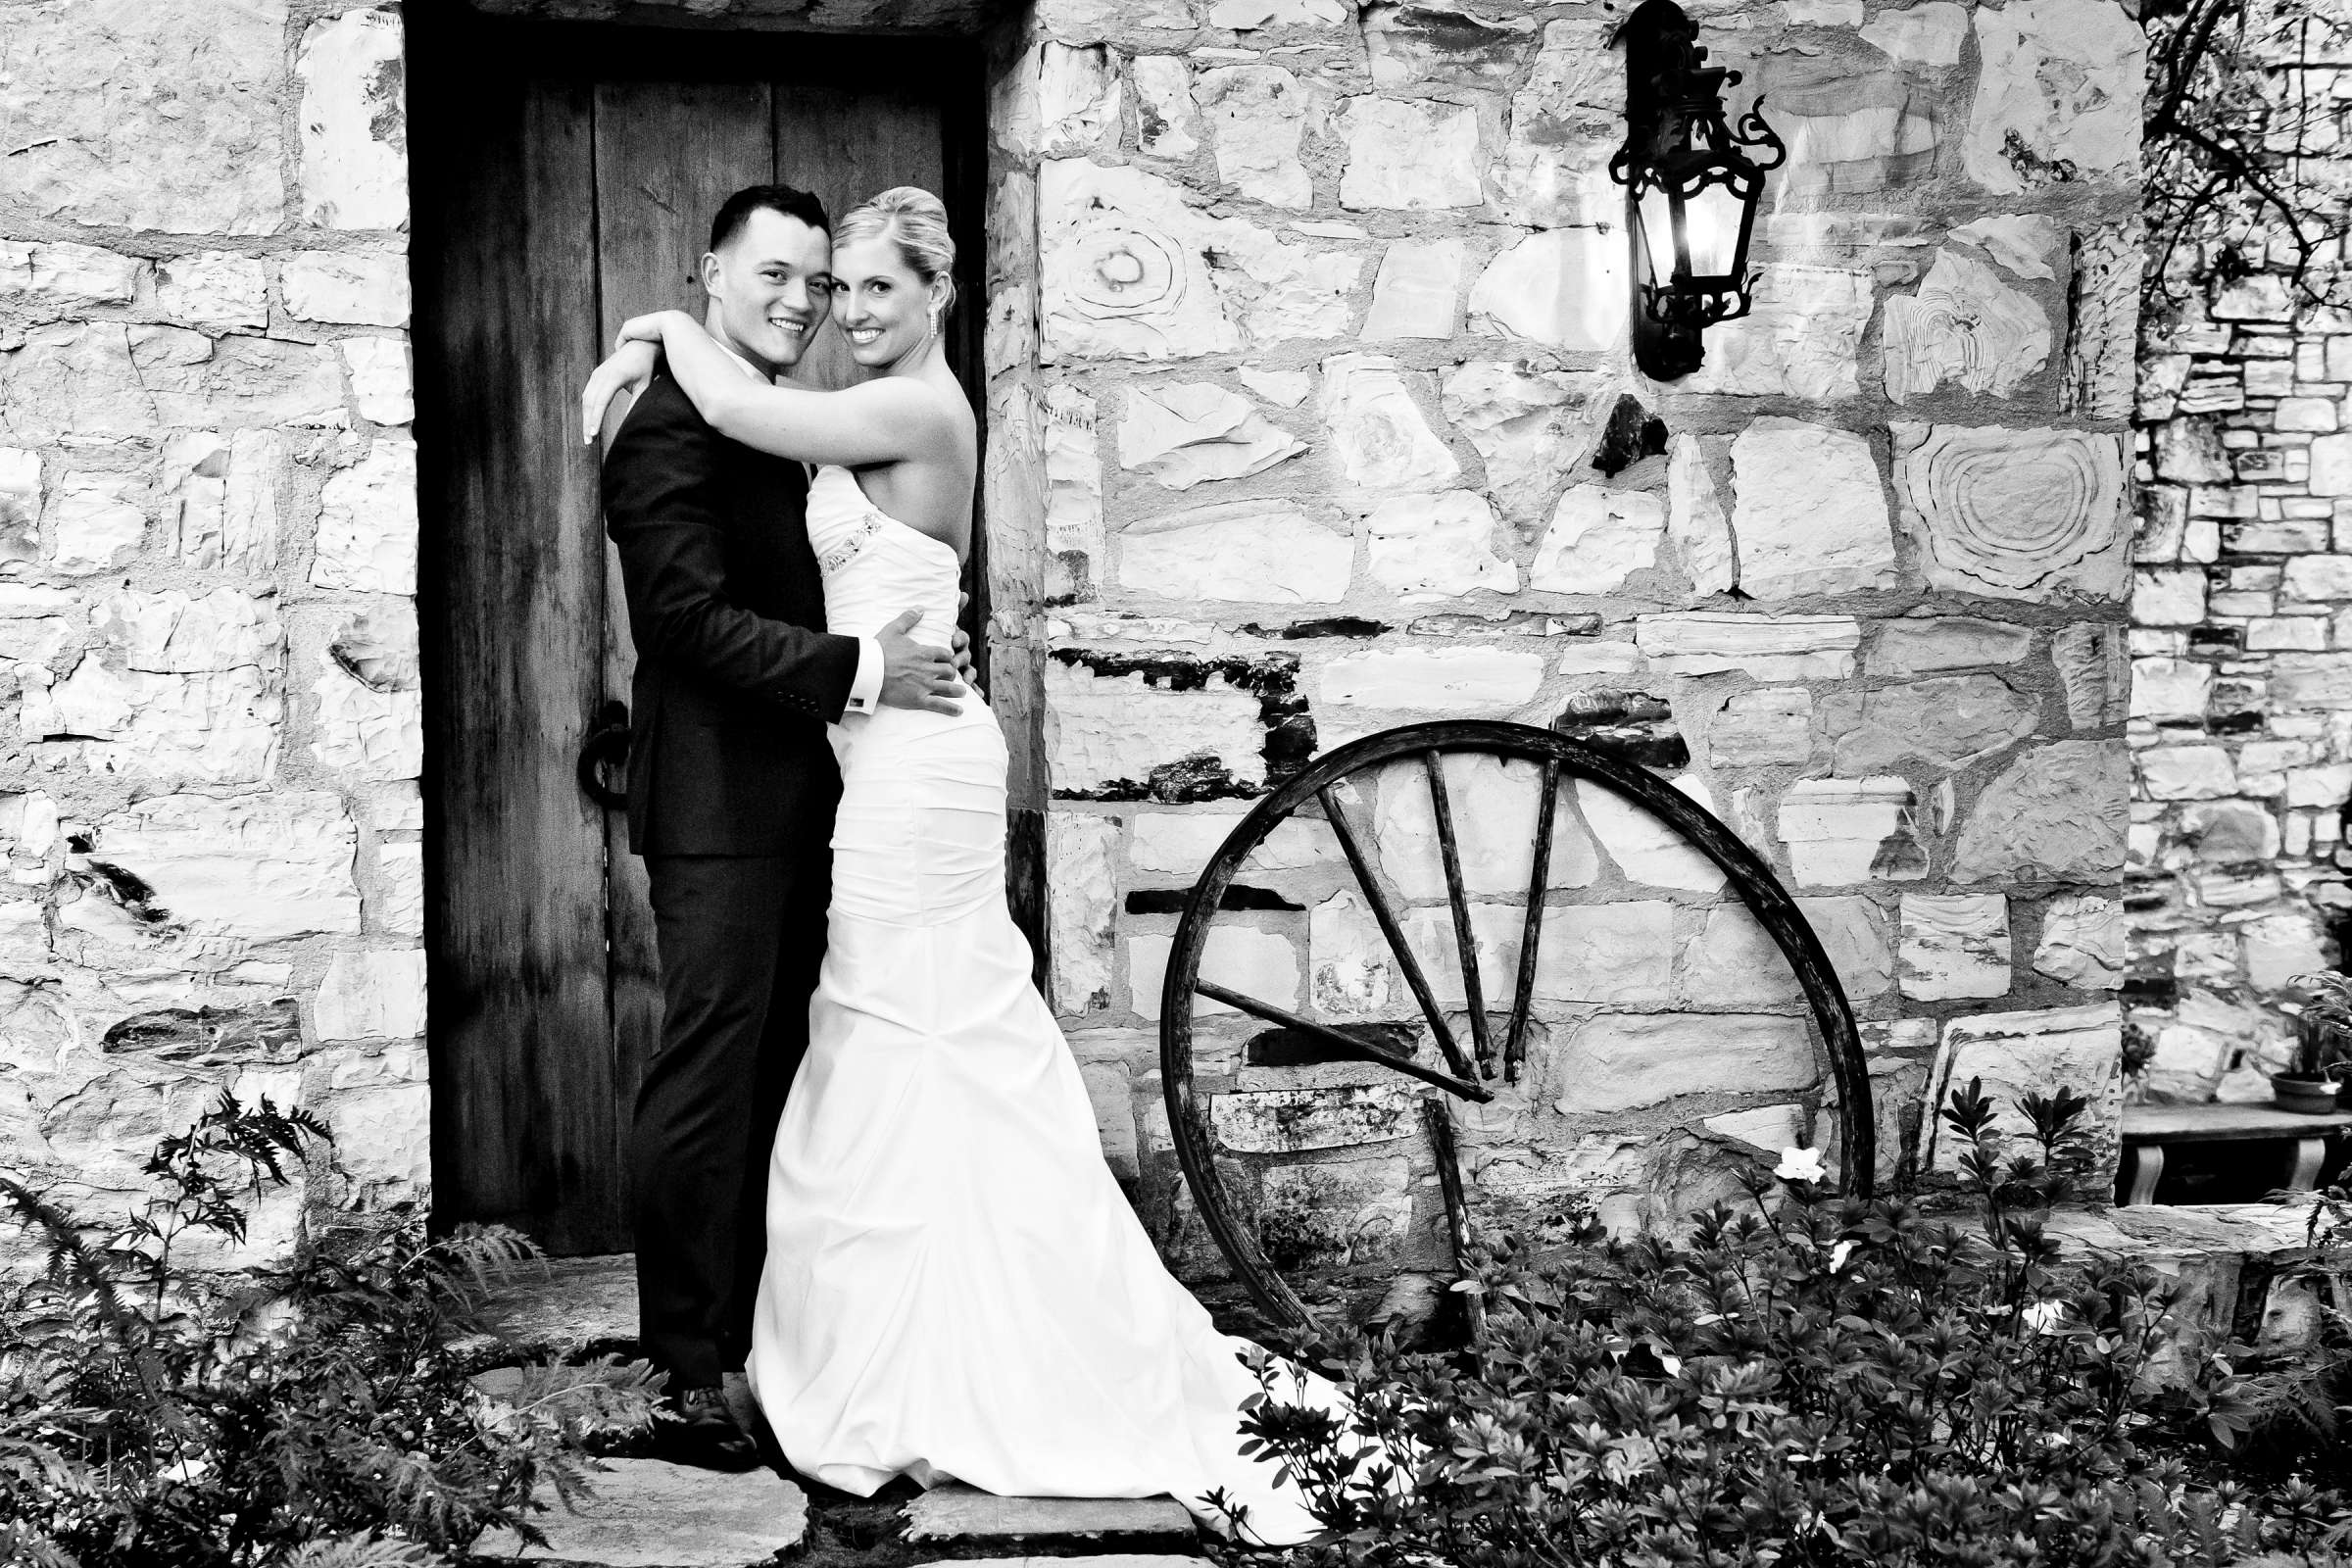 Holman Ranch Wedding, Kaley and Jason Wedding Photo #356229 by True Photography